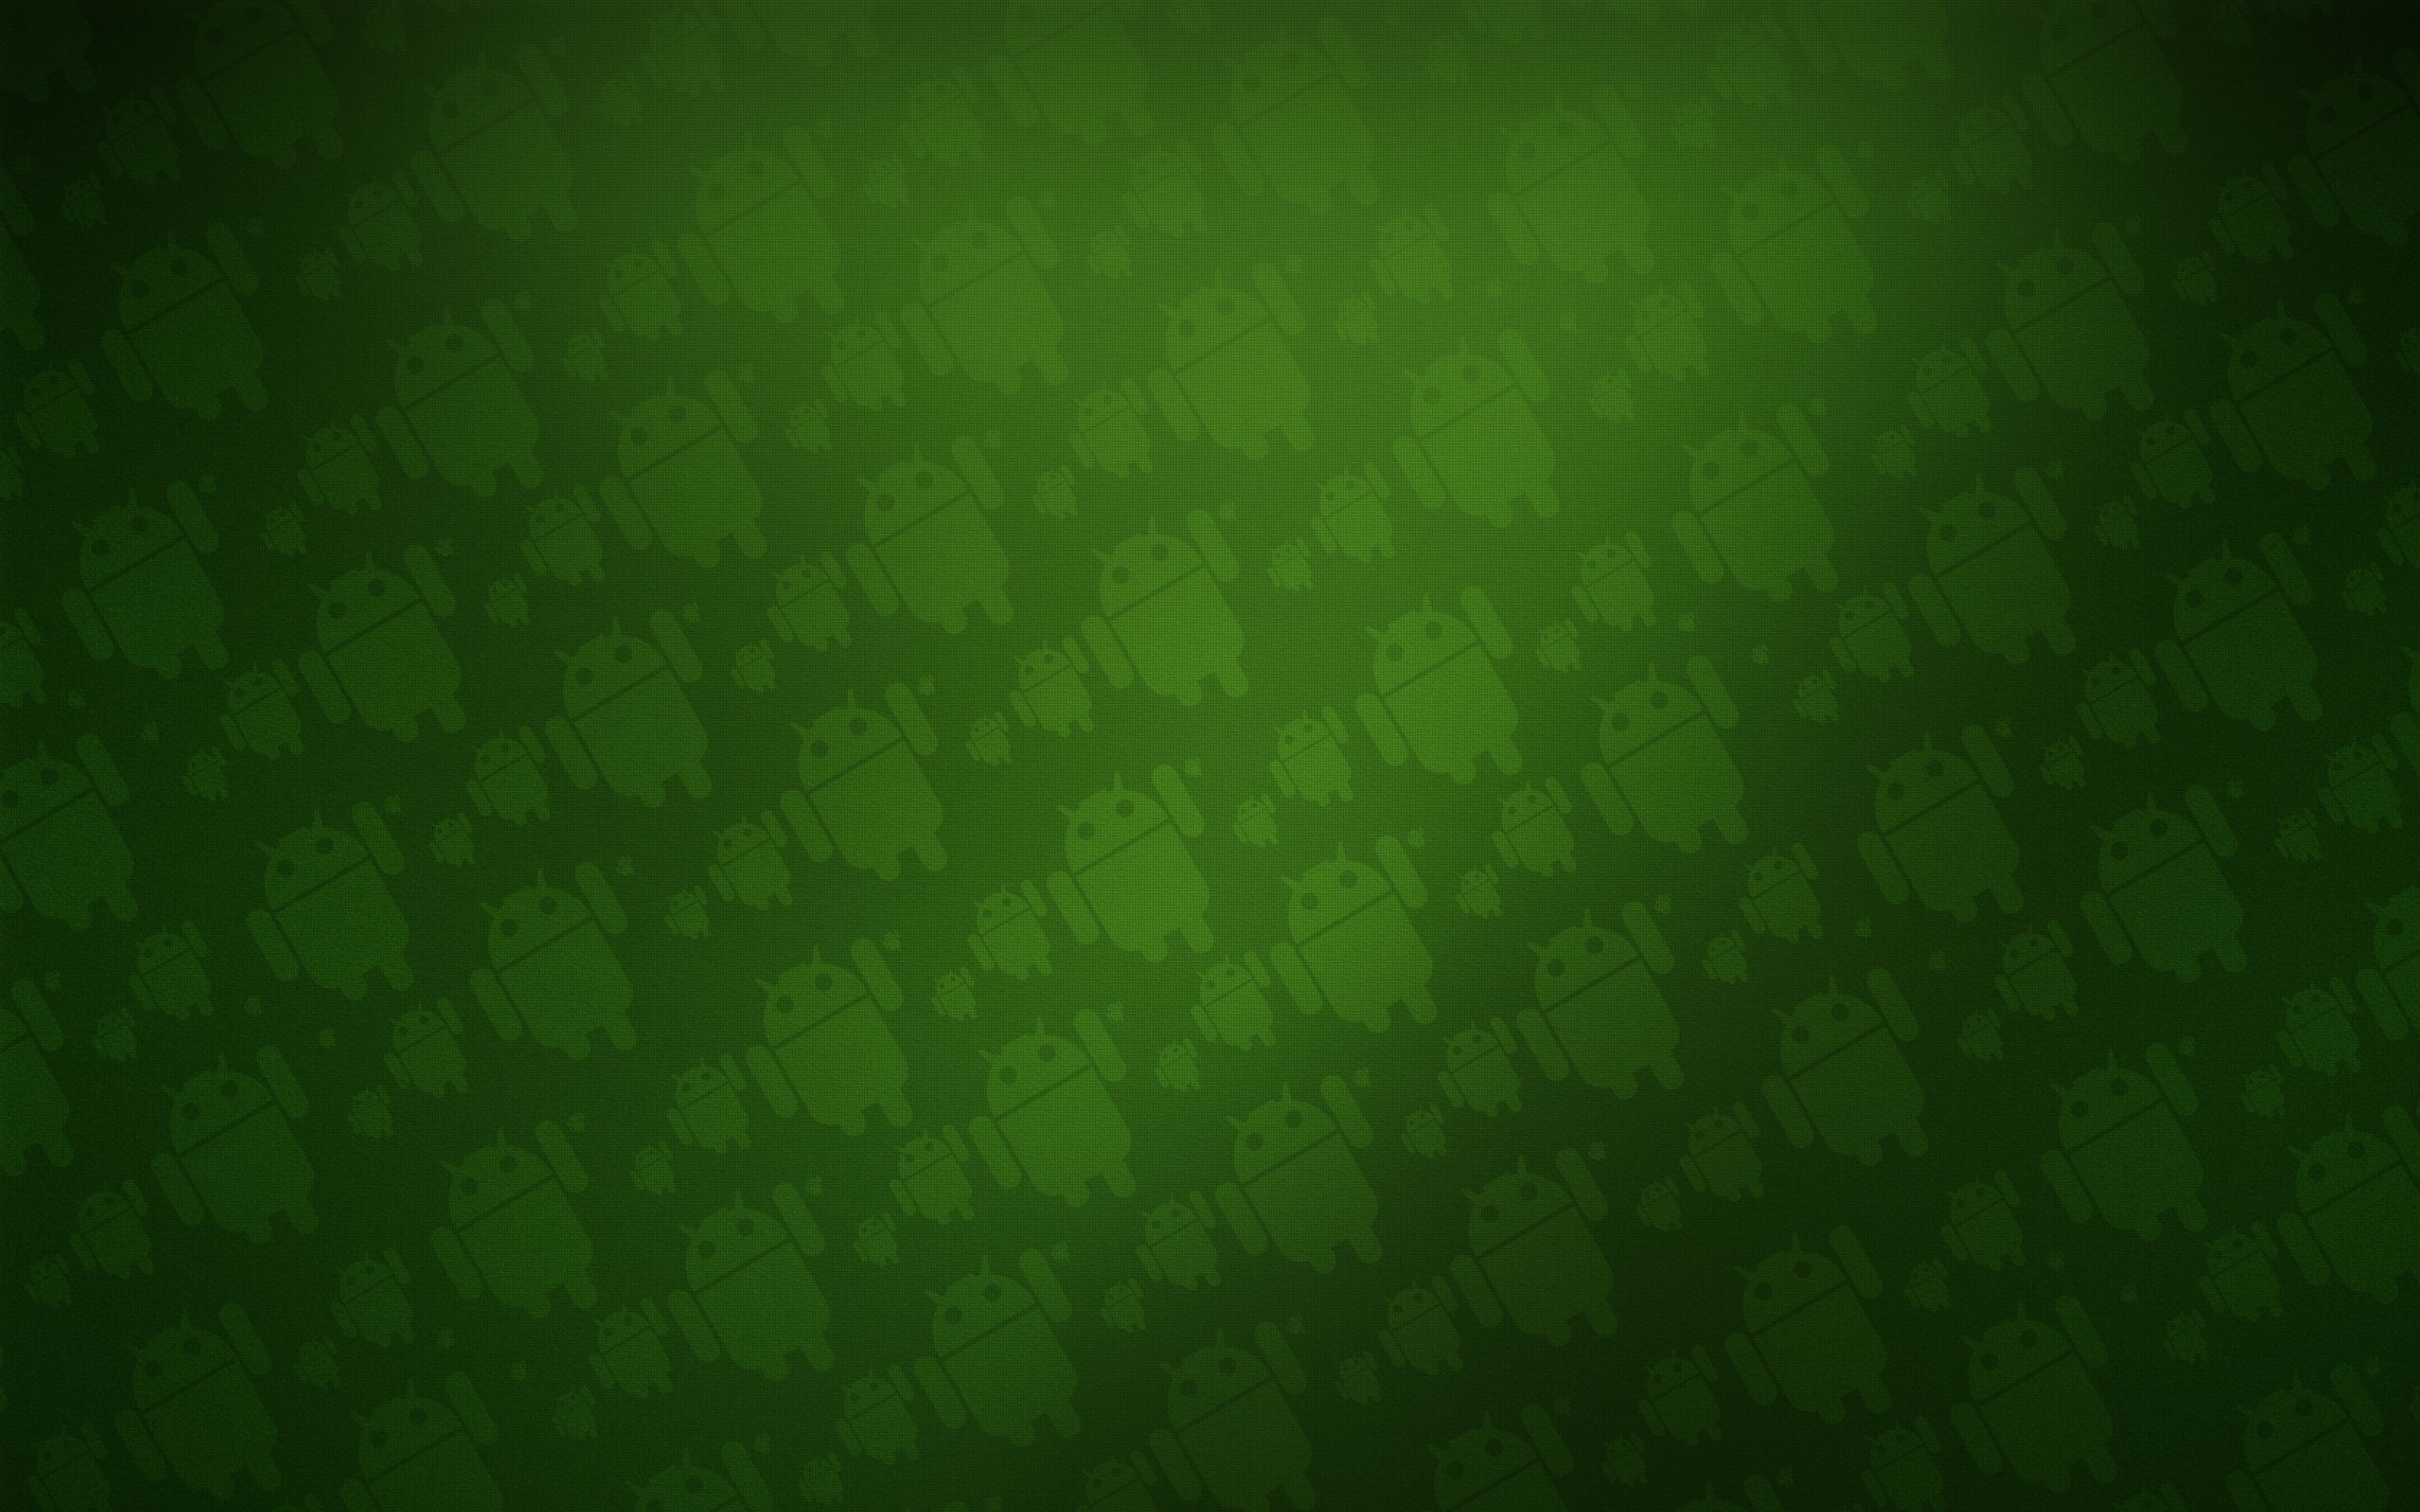 abstract green background hd wallpaper